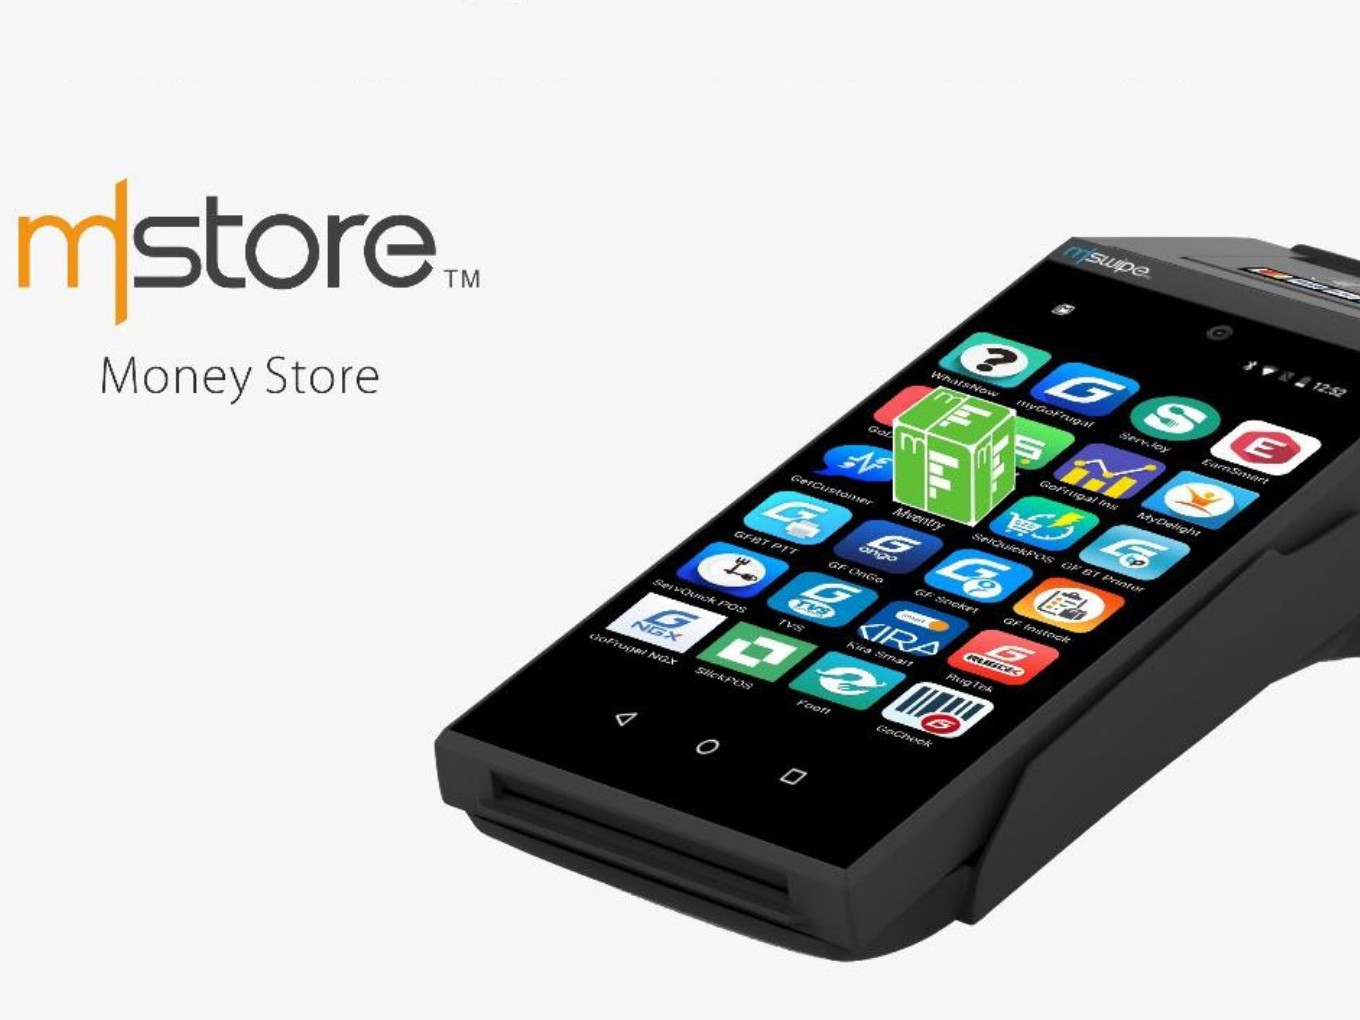 Mswipe's Money Store Brings PoS Apps, Payment Tools For Merchants